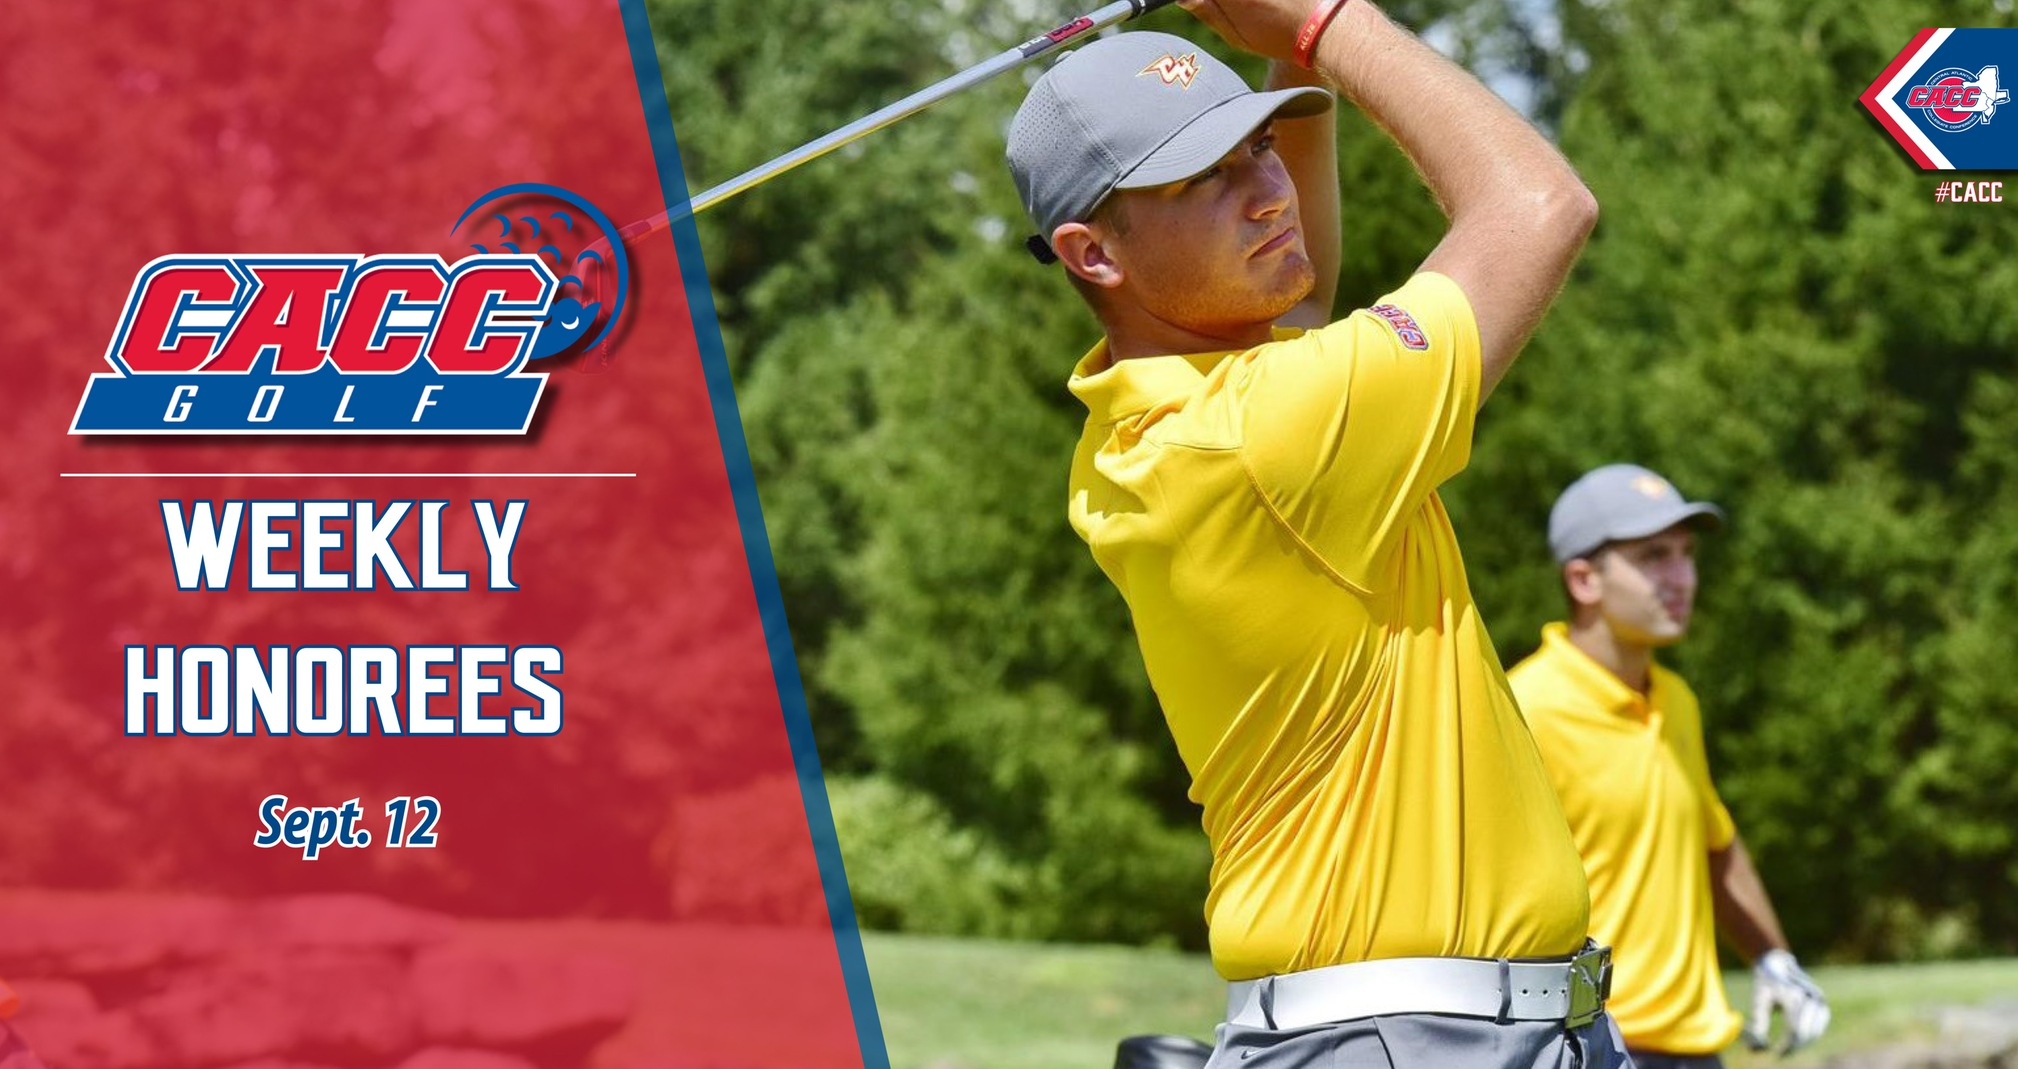 CACC Golf Weekly Honorees (Sept. 12)